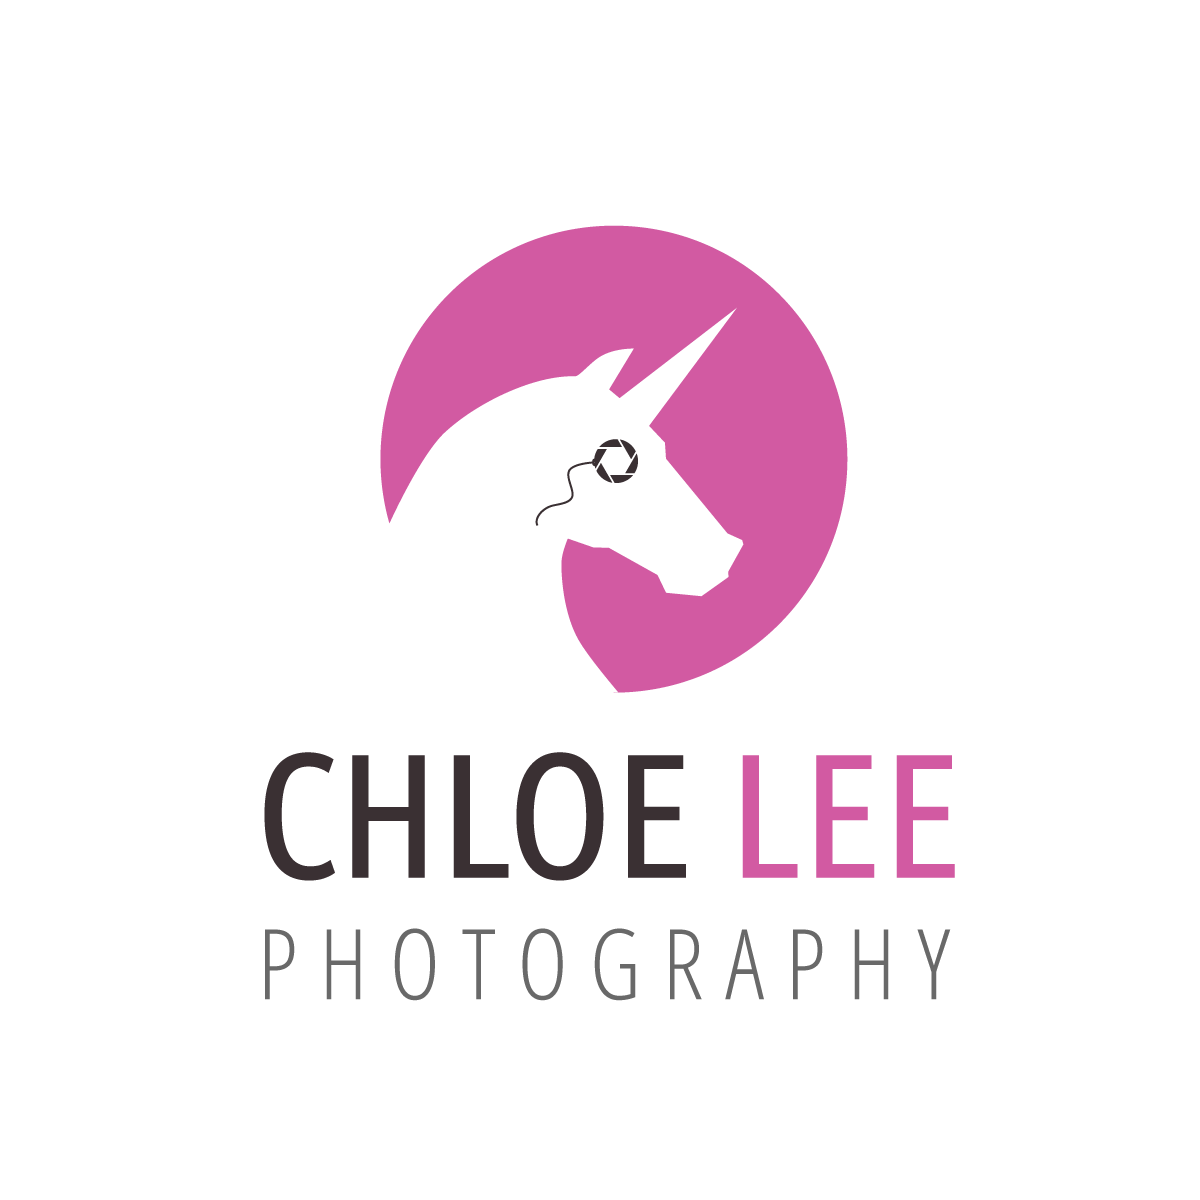 Alternative Essex Wedding Photographer | Fun, Creative & Quirky Wedding Photography // Chloe Lee Photo